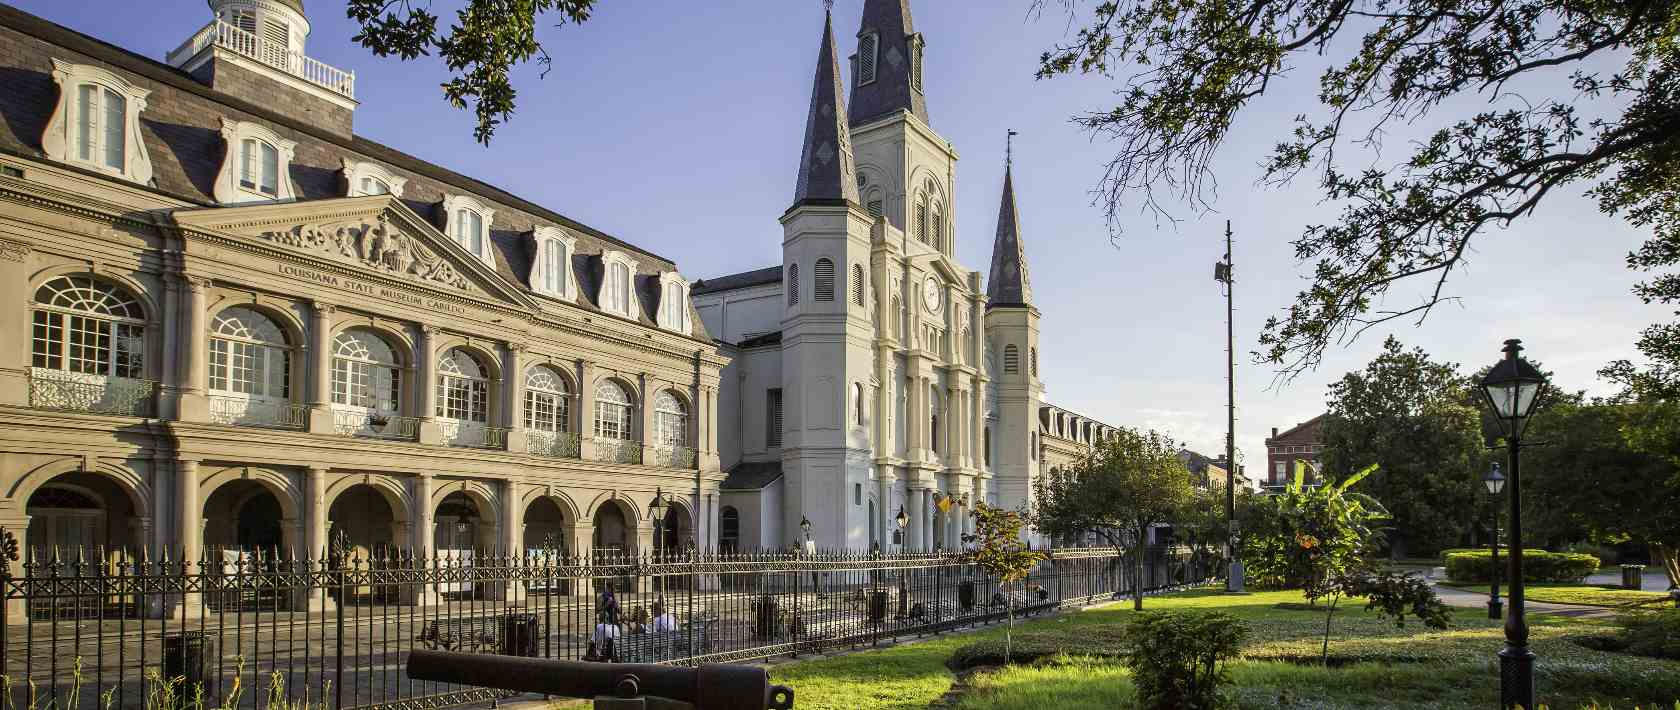 The Cabildo and Presbytère buildings viewed from Jackson Square in New Orleans